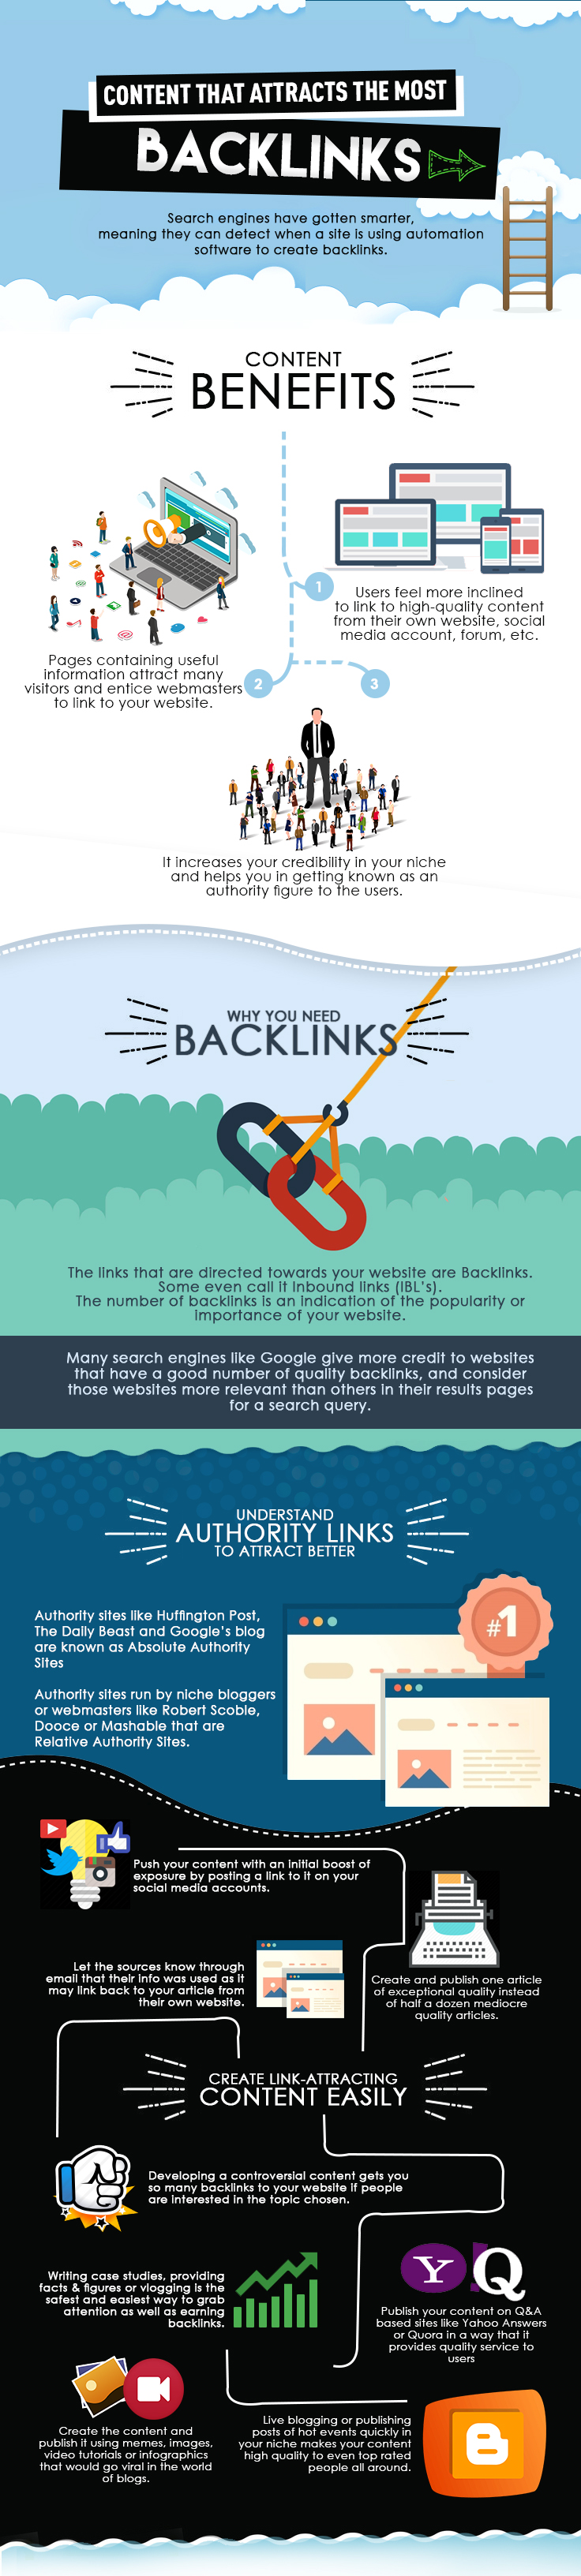 Content that attracts backlinks Infographic